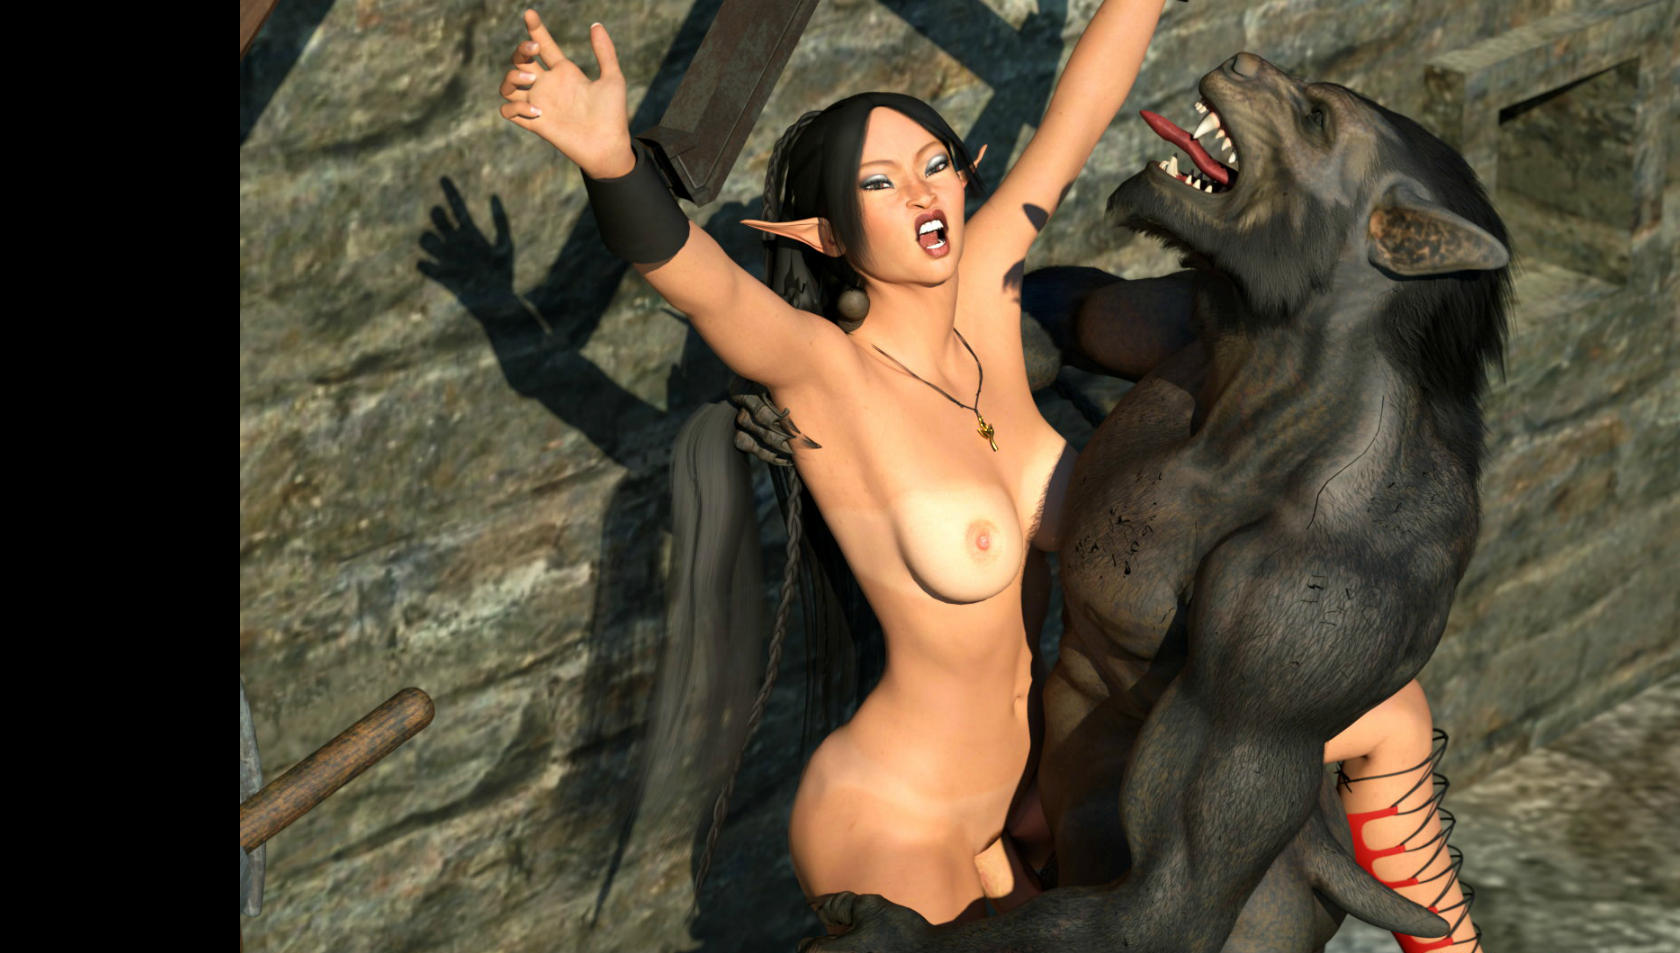 Princess fucked by monster naked movies